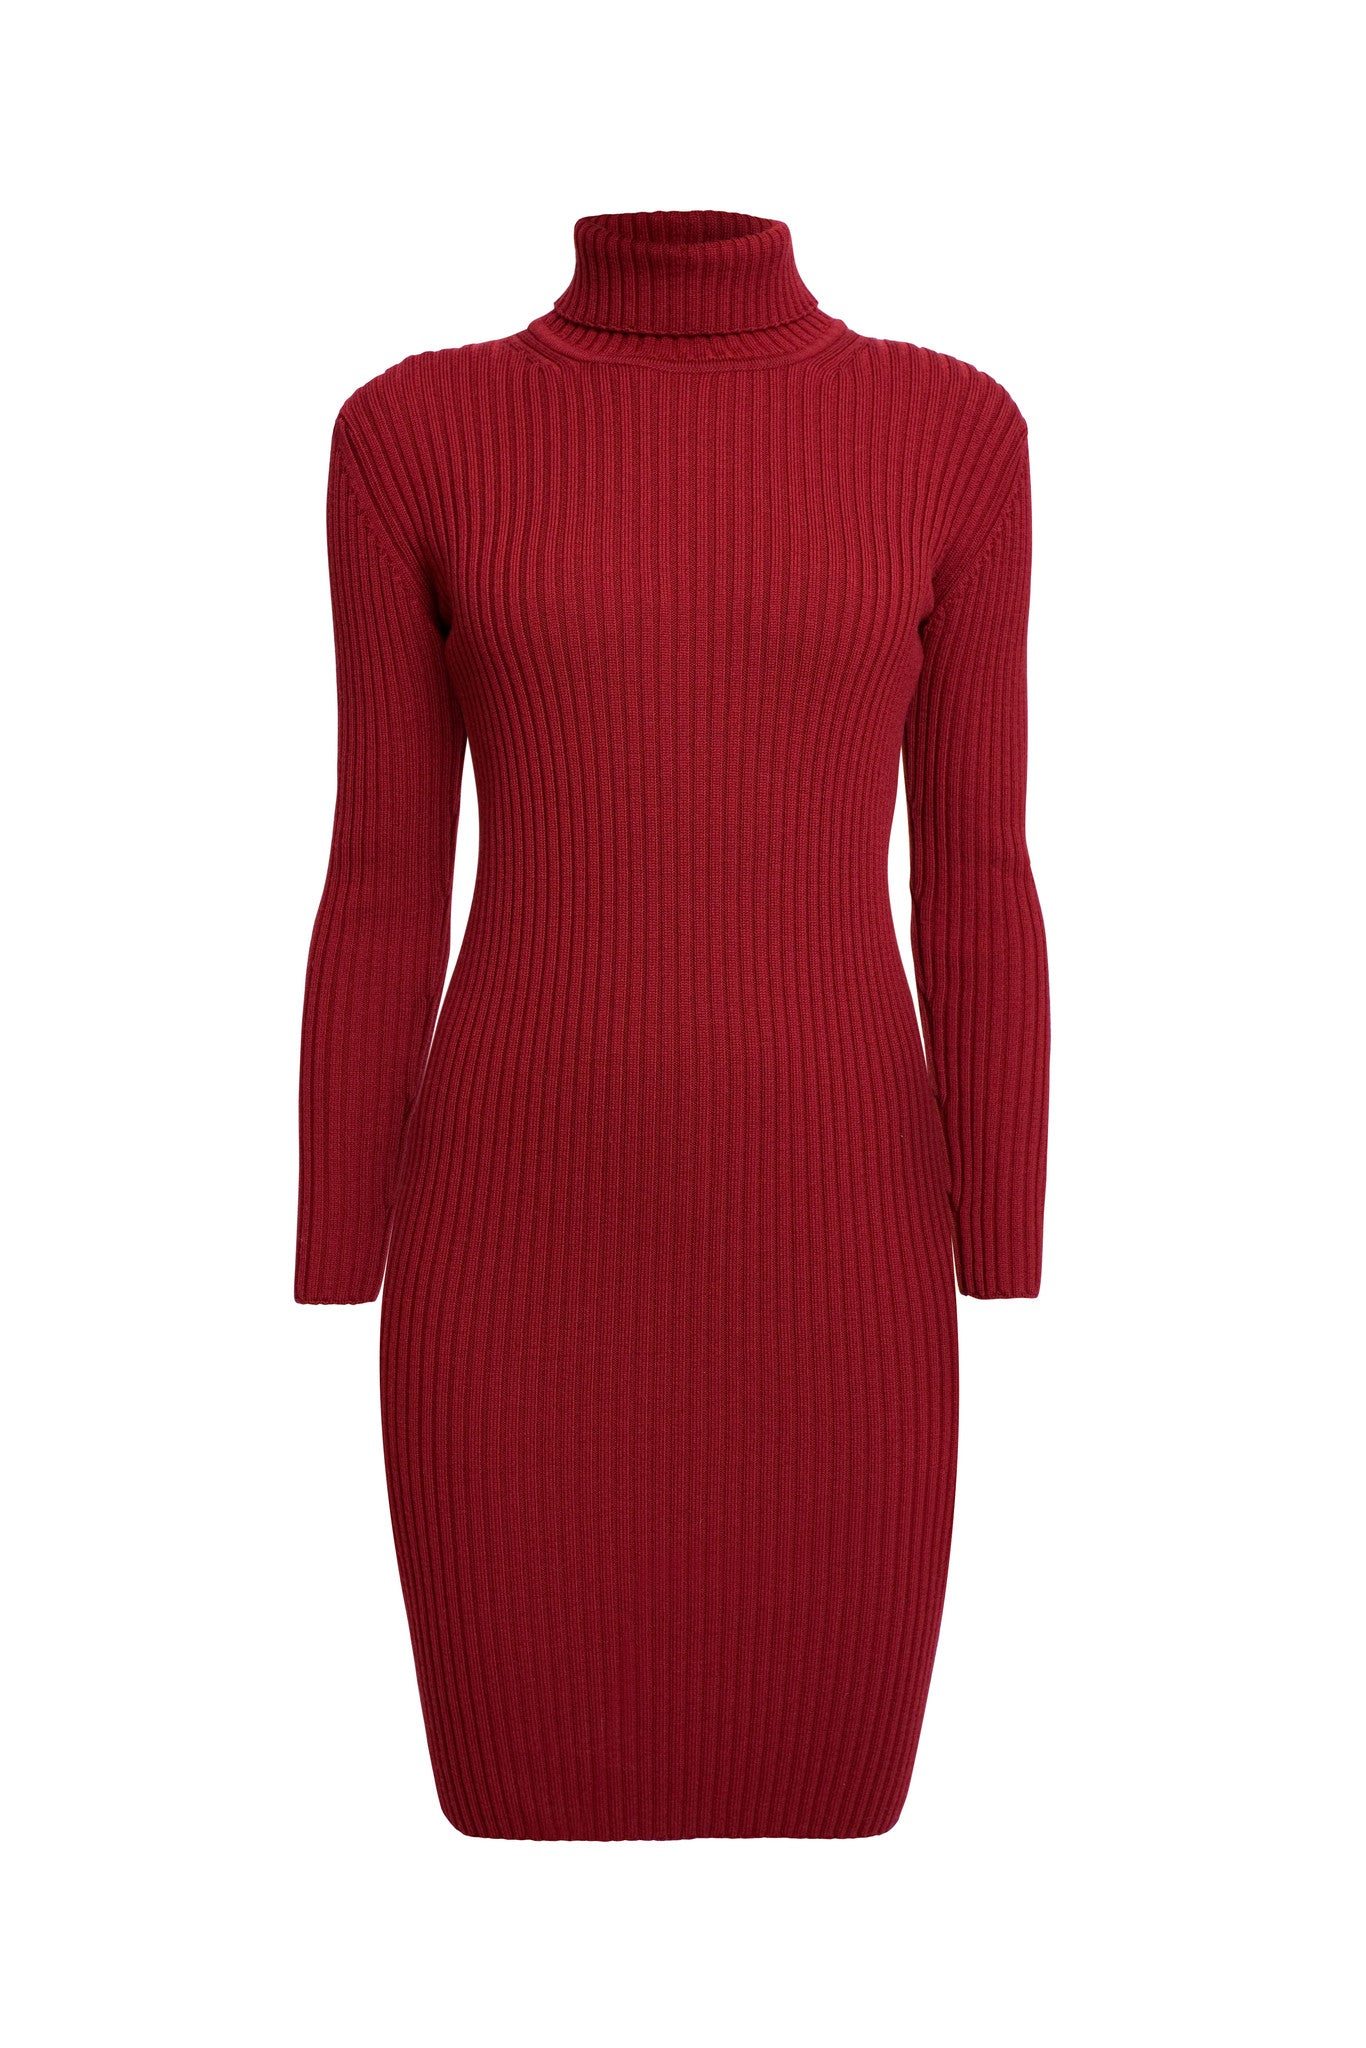 Red ribbed knit turtle neck dress